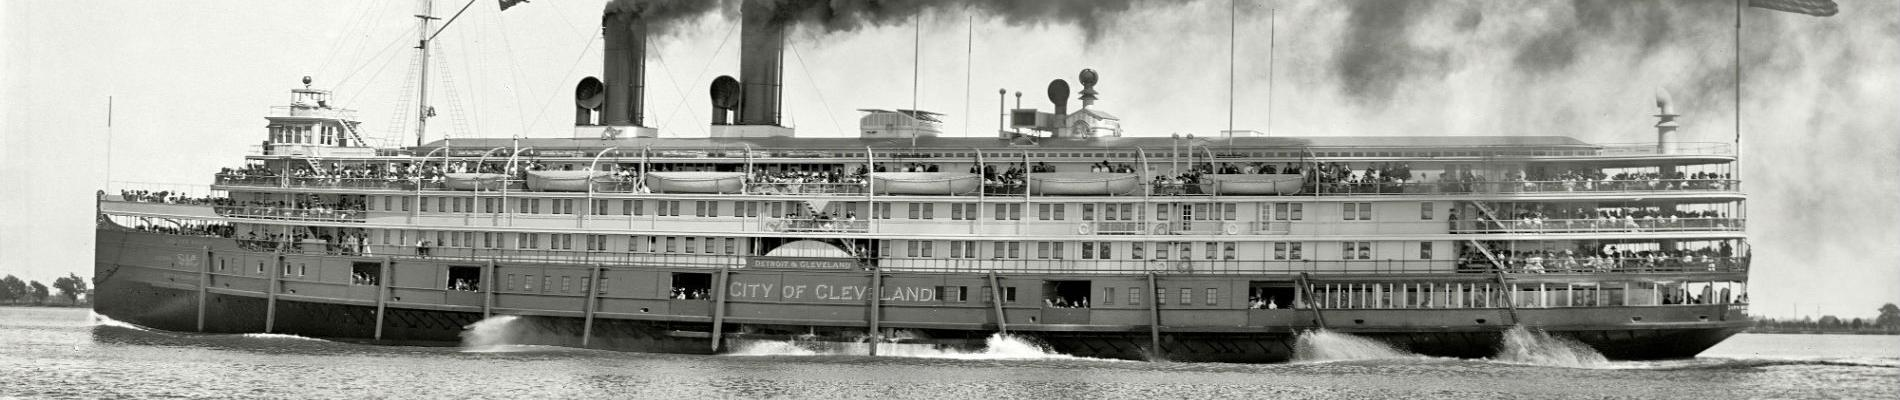 The Floating Palaces of the Great Lakes